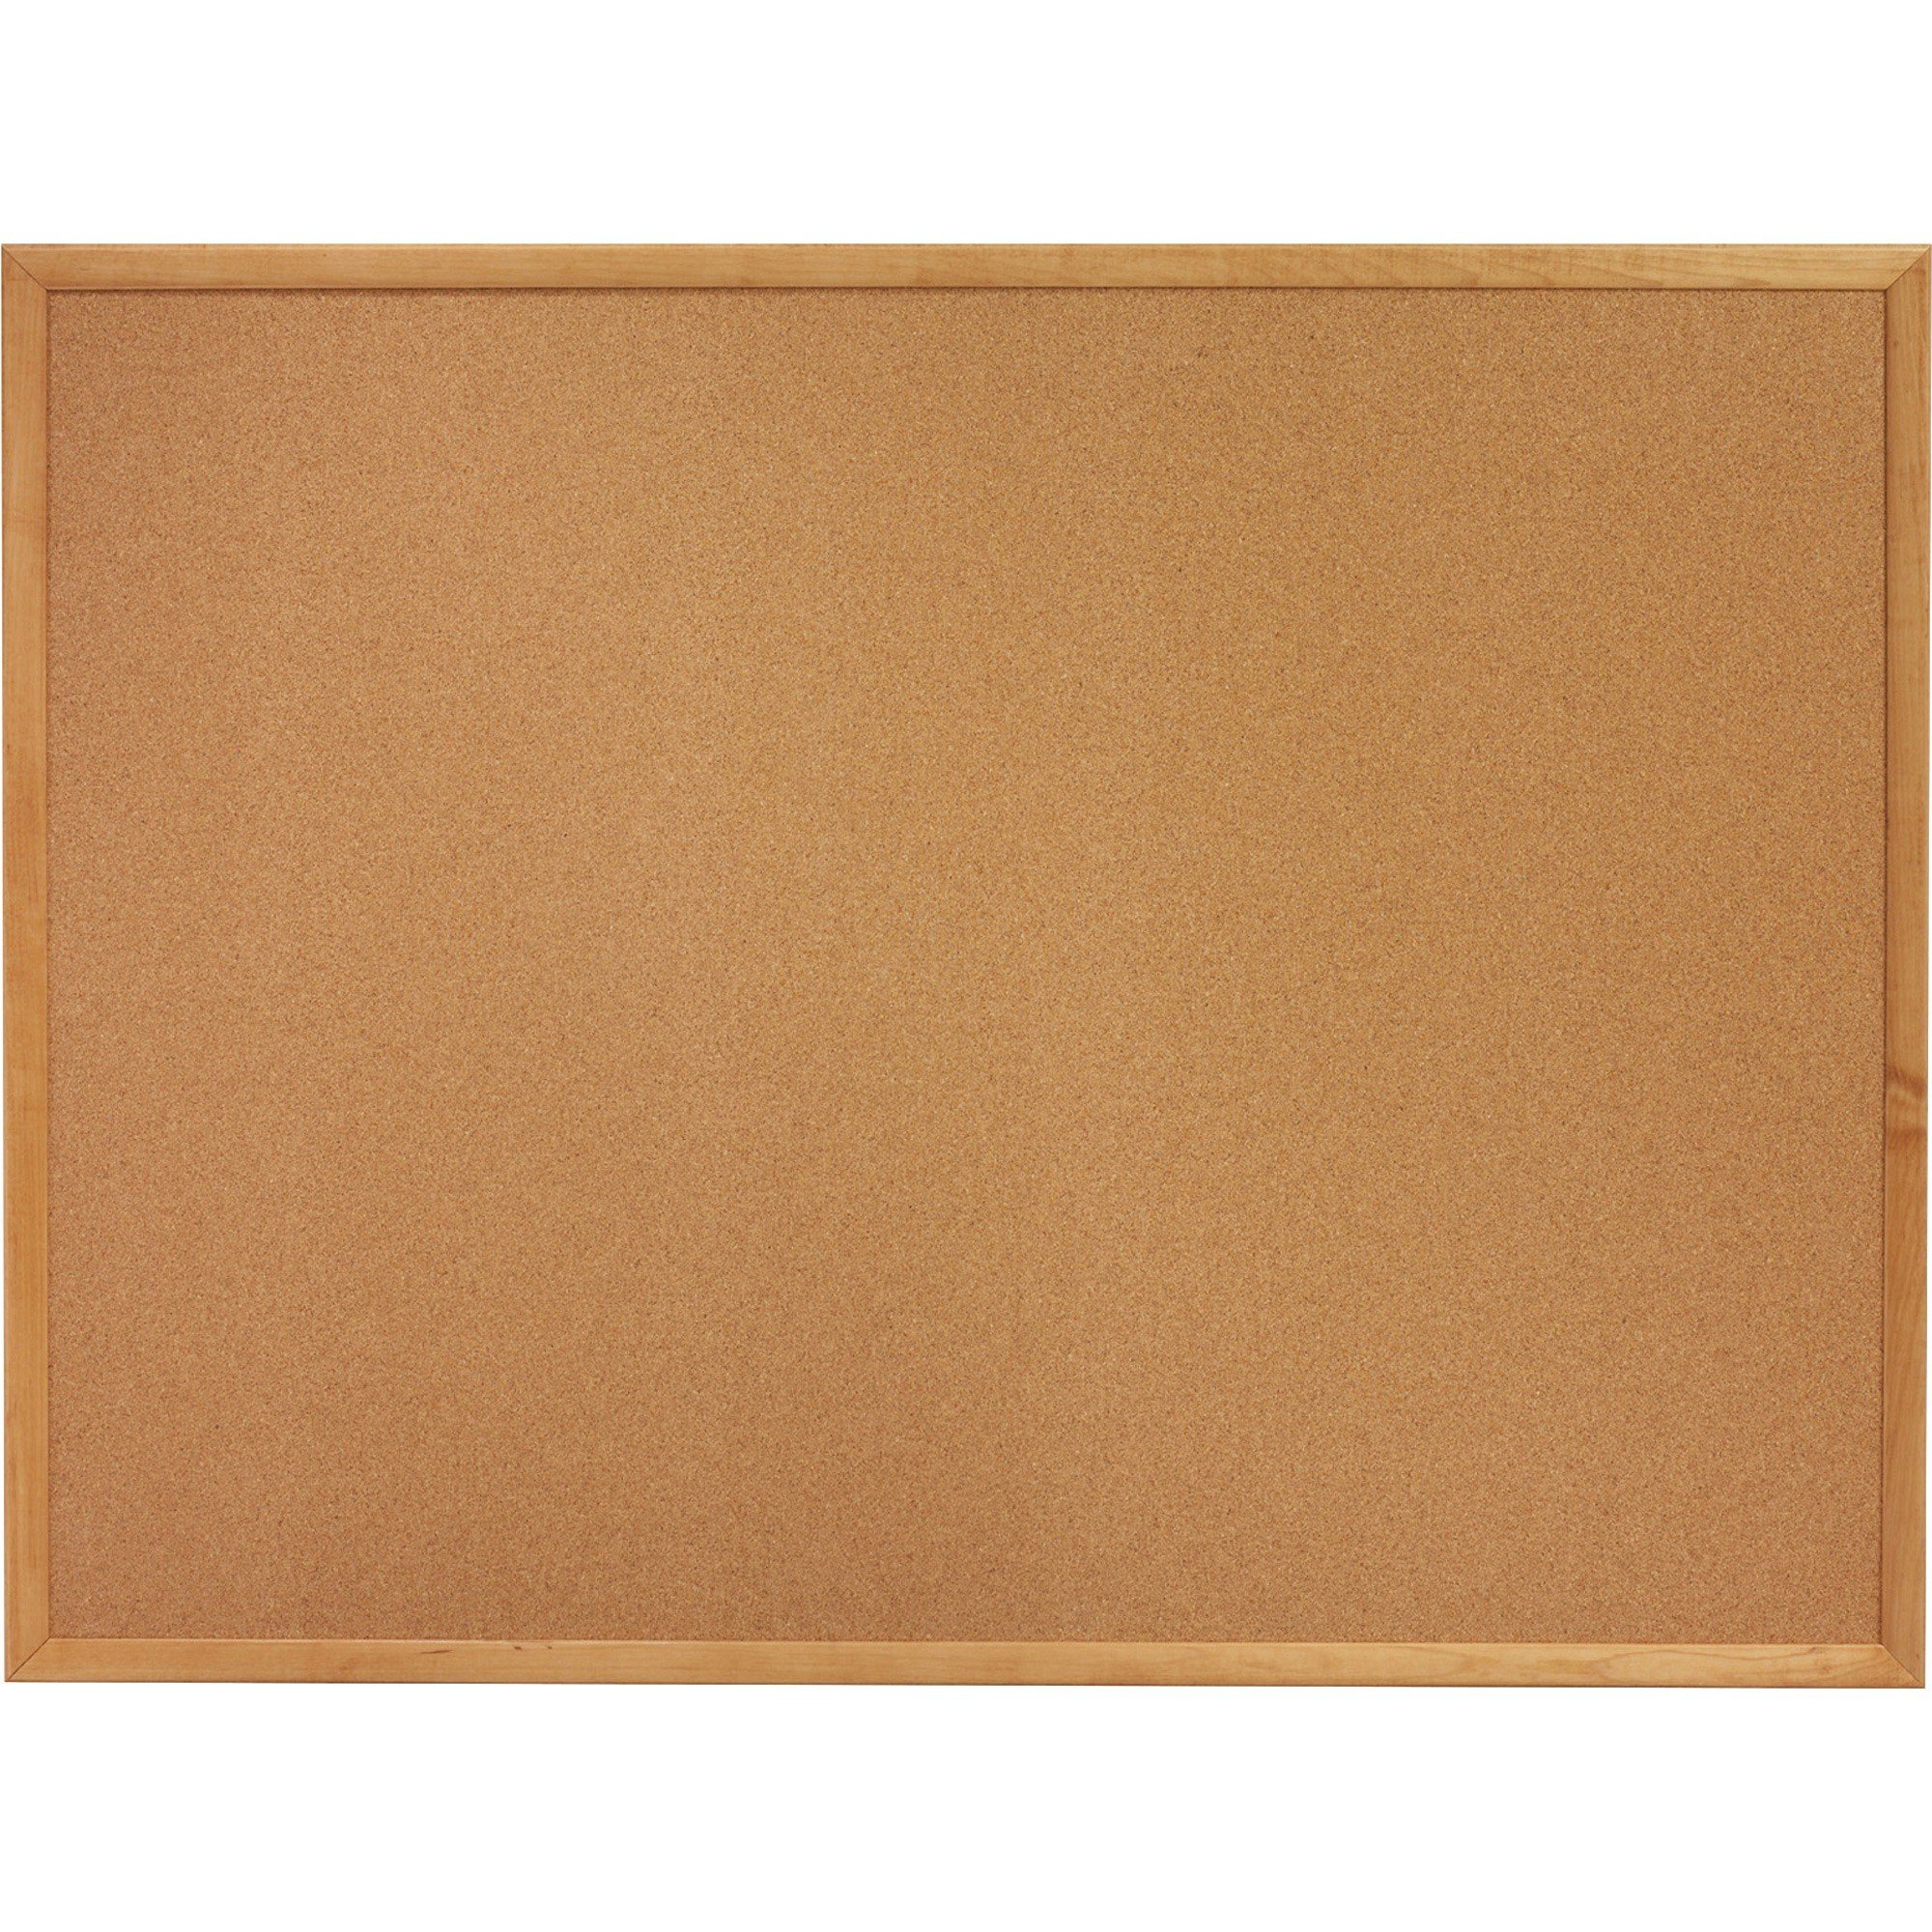 "Sparco Oak Wood Frame Cork Board 36"" x 24"""